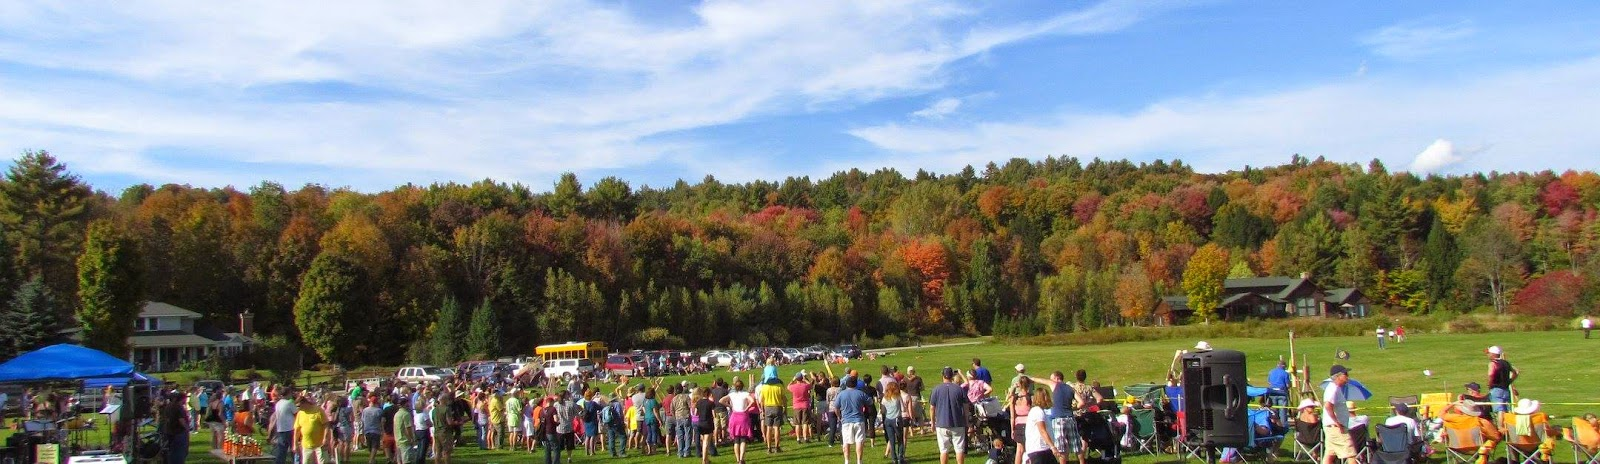 Vermont Pumpkin Chuckin' Festival - by Green Mtn Mkting and Adv.